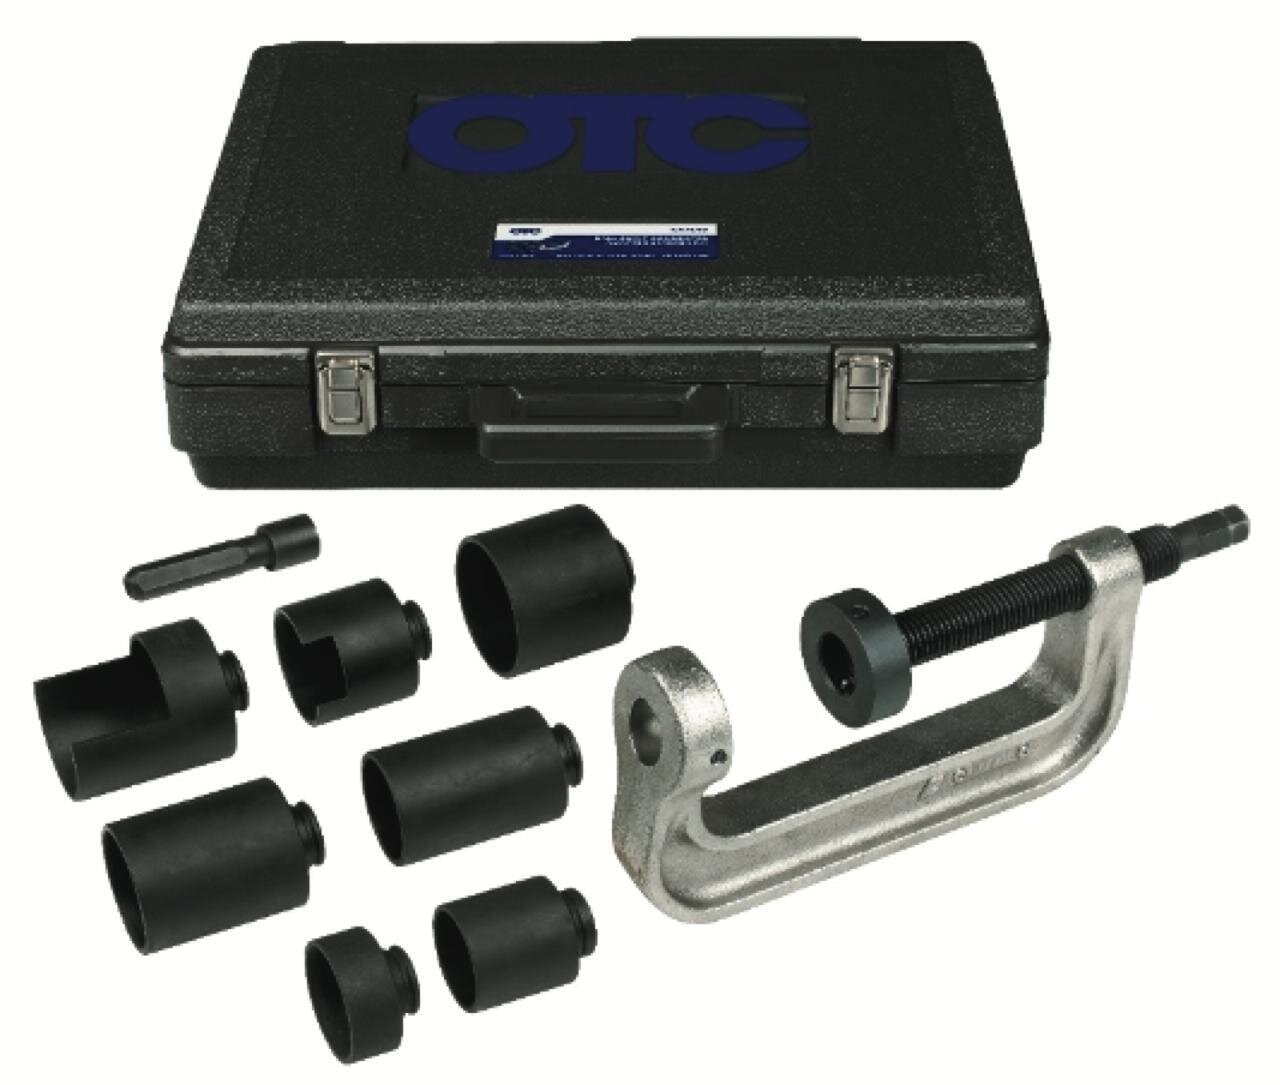 OWCA7149 - Connected Ball Joint Kit